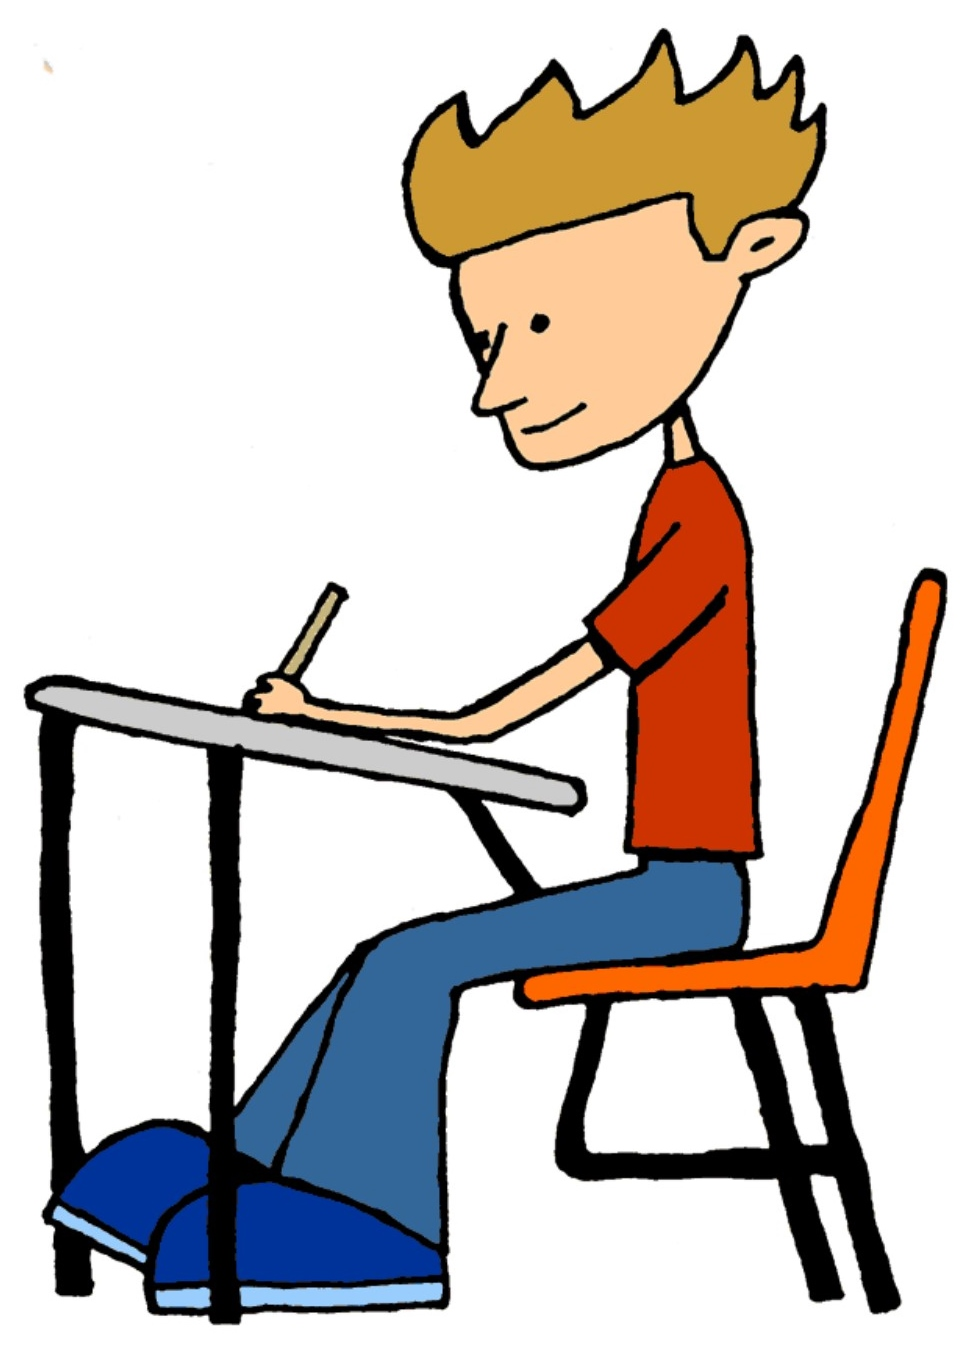 Student working office of curriculum clipart